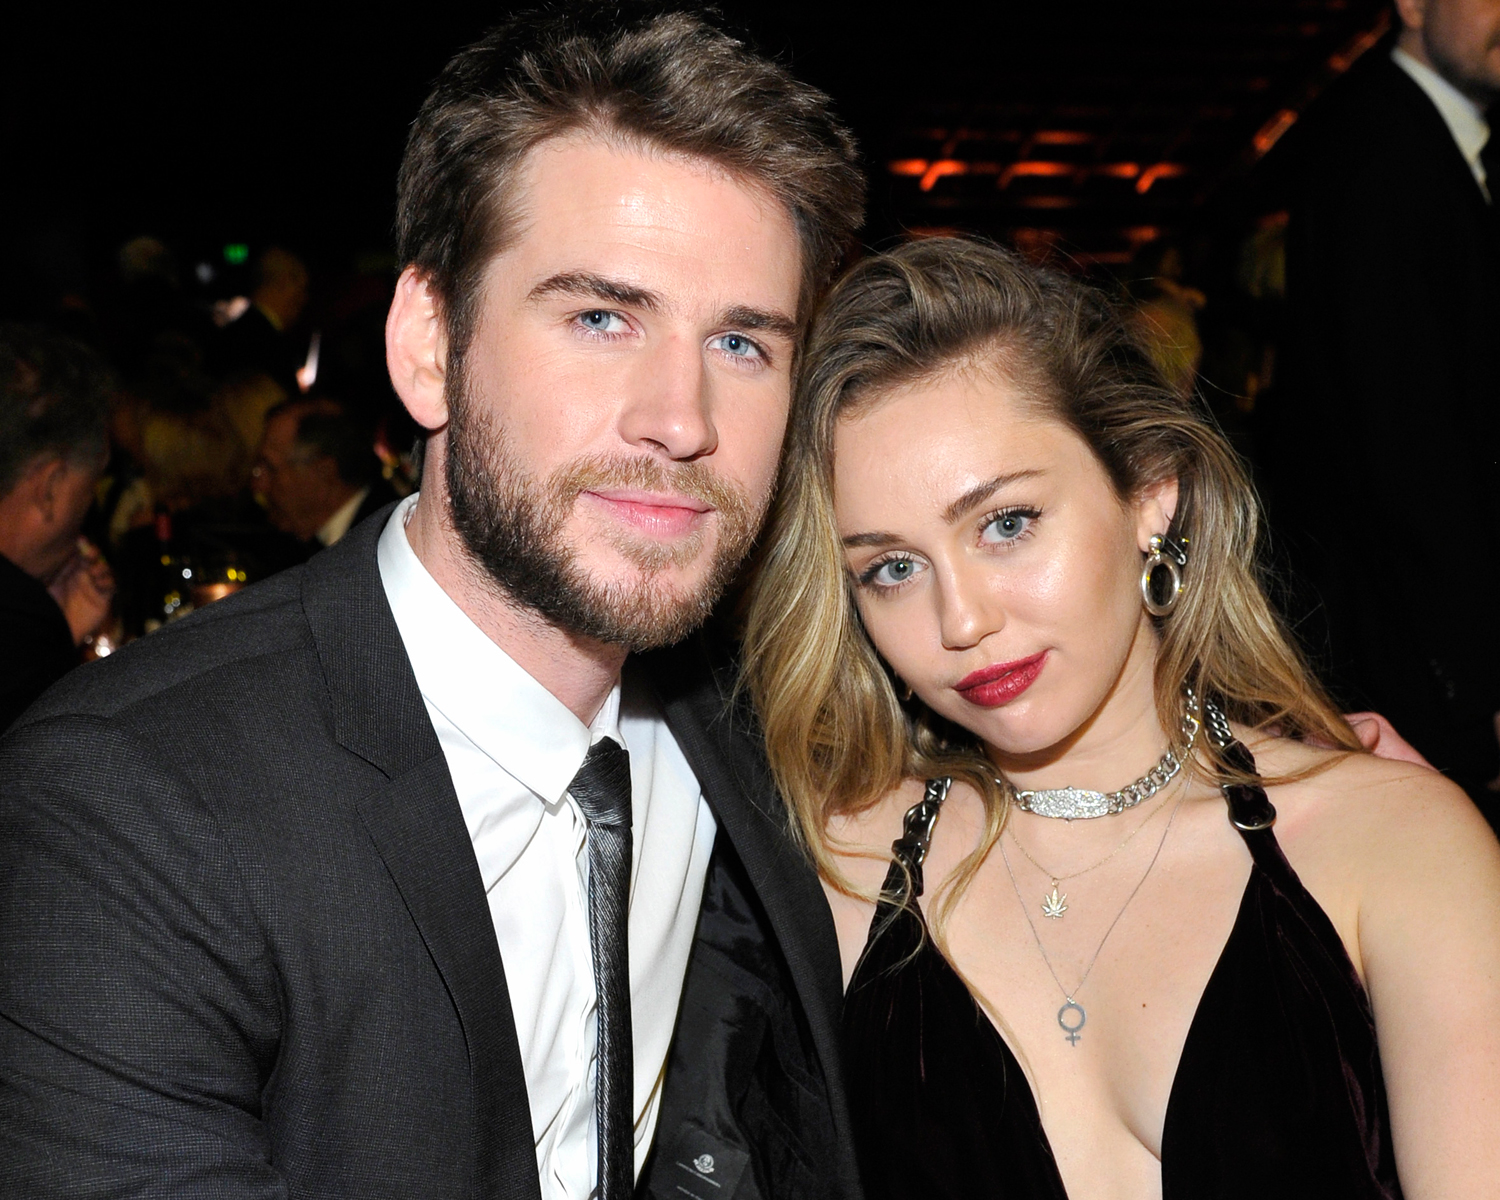 Miley Cyrus Can't Stop Sharing Wedding Photos (And We Fully Support It)